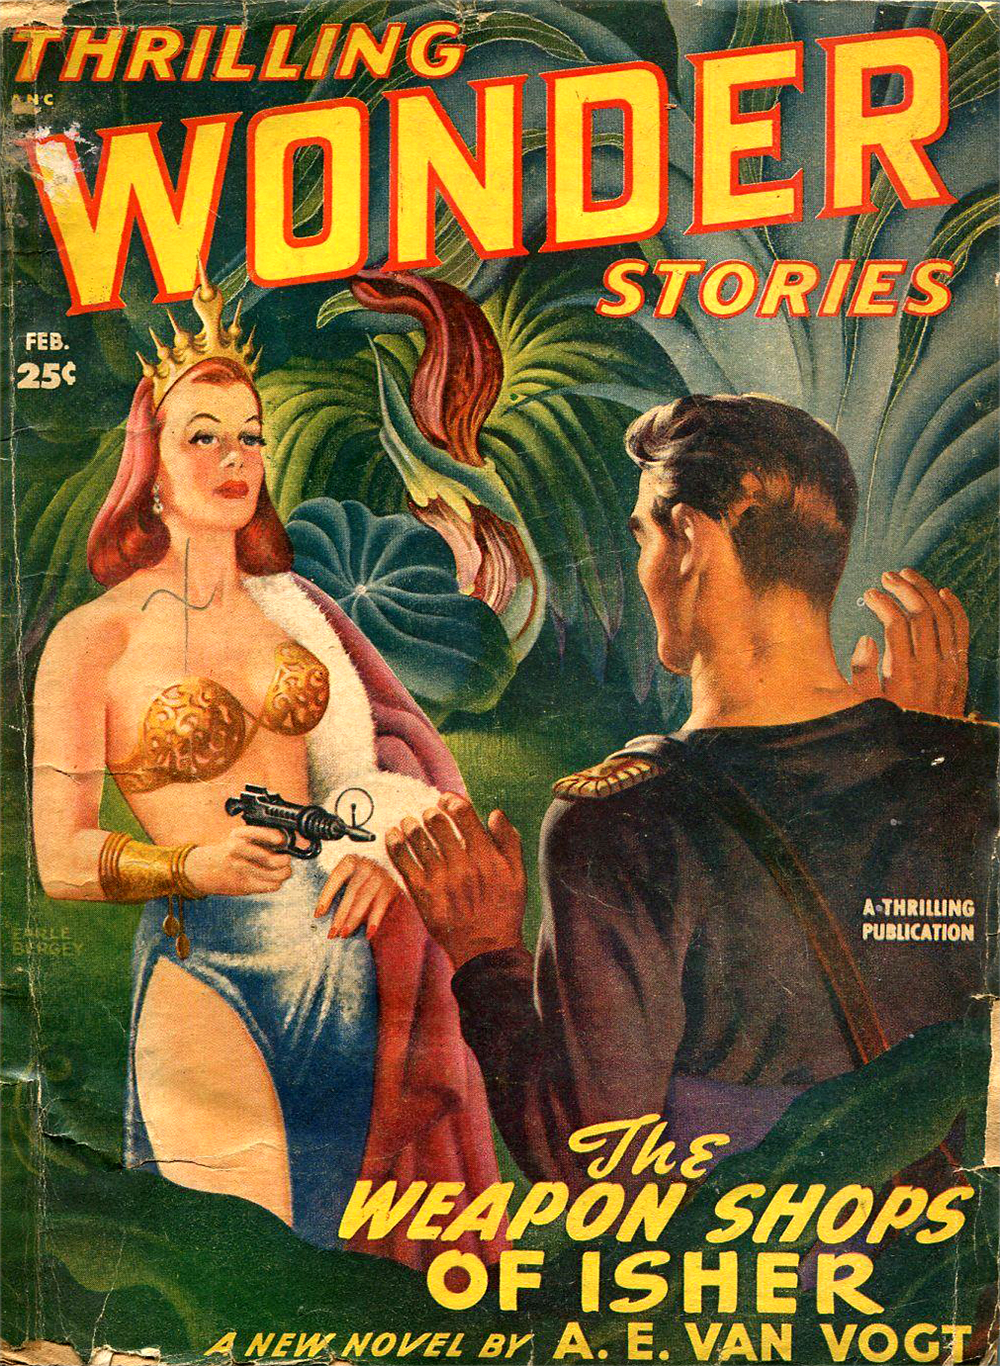 thrilling-wonder-stories-cover.jpg